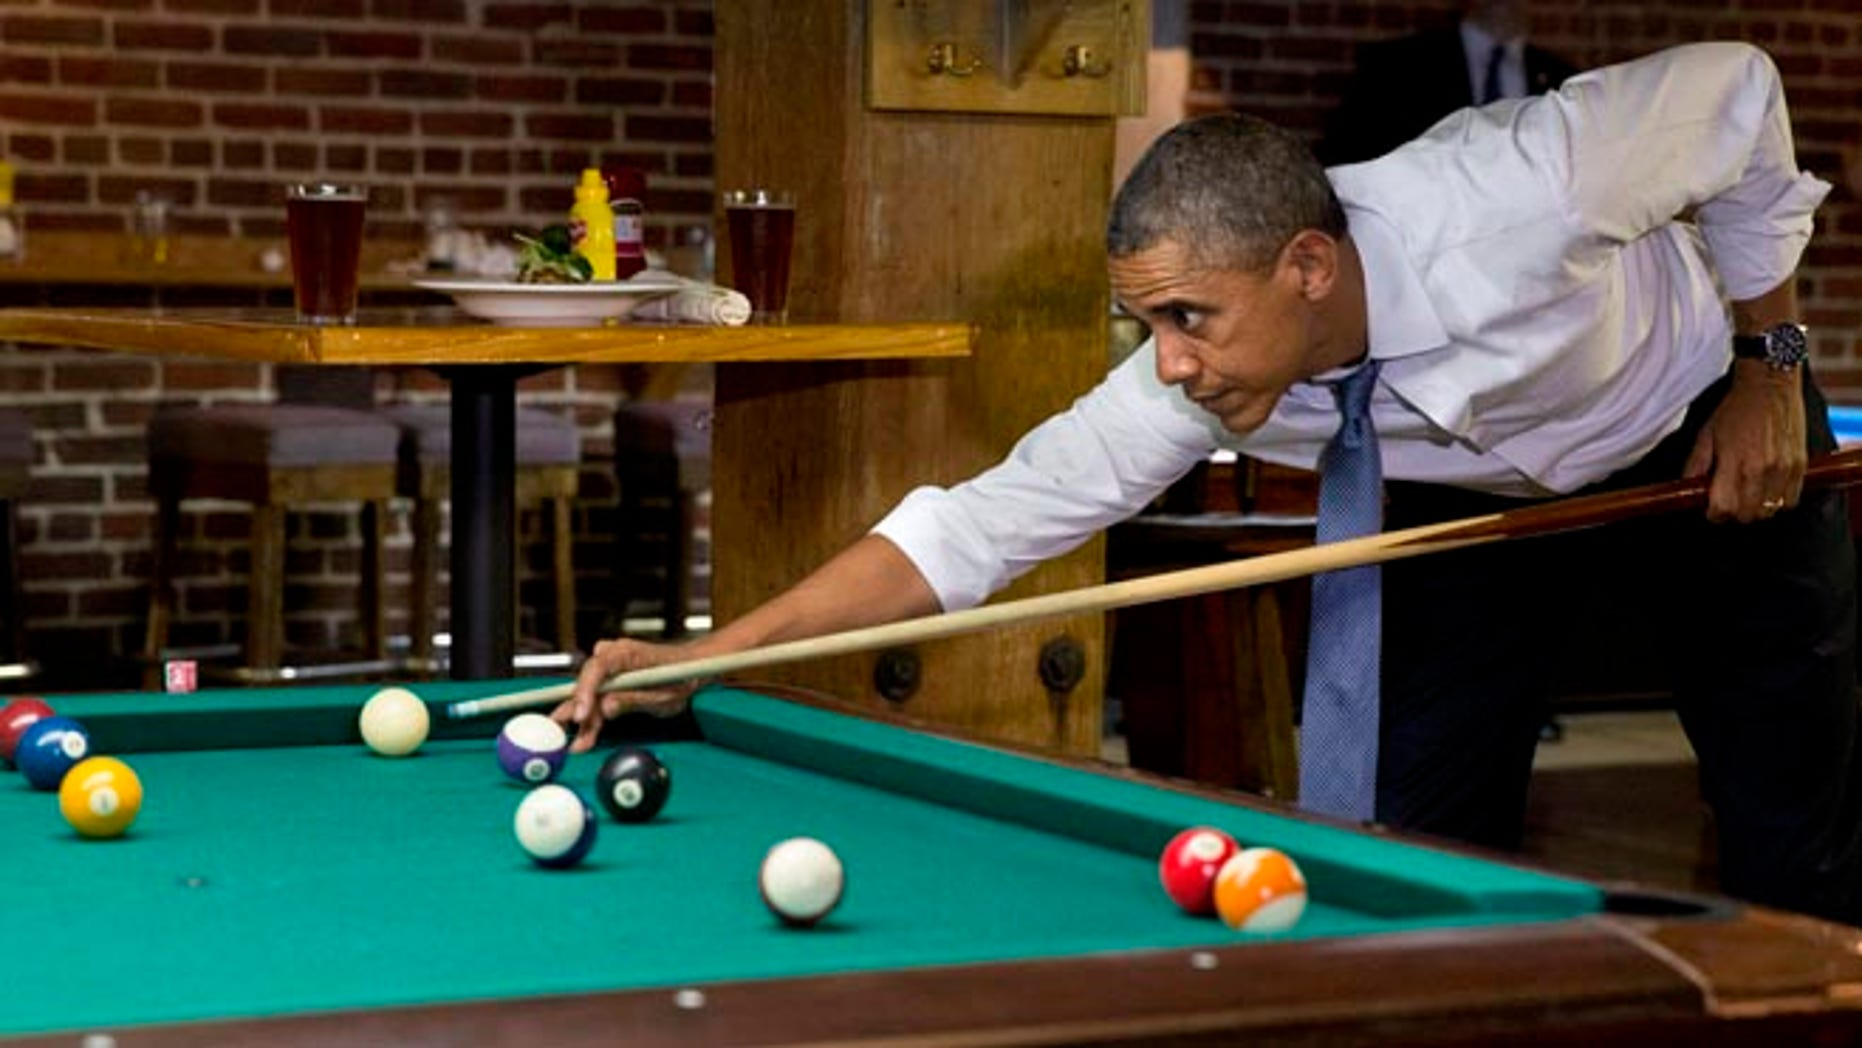 President Barack Obama plays pool at Wynkoop Brewing Co. with Colorado Gov. John Hickenlooper, not seen, Tuesday, July 8, 2014, in Denver.